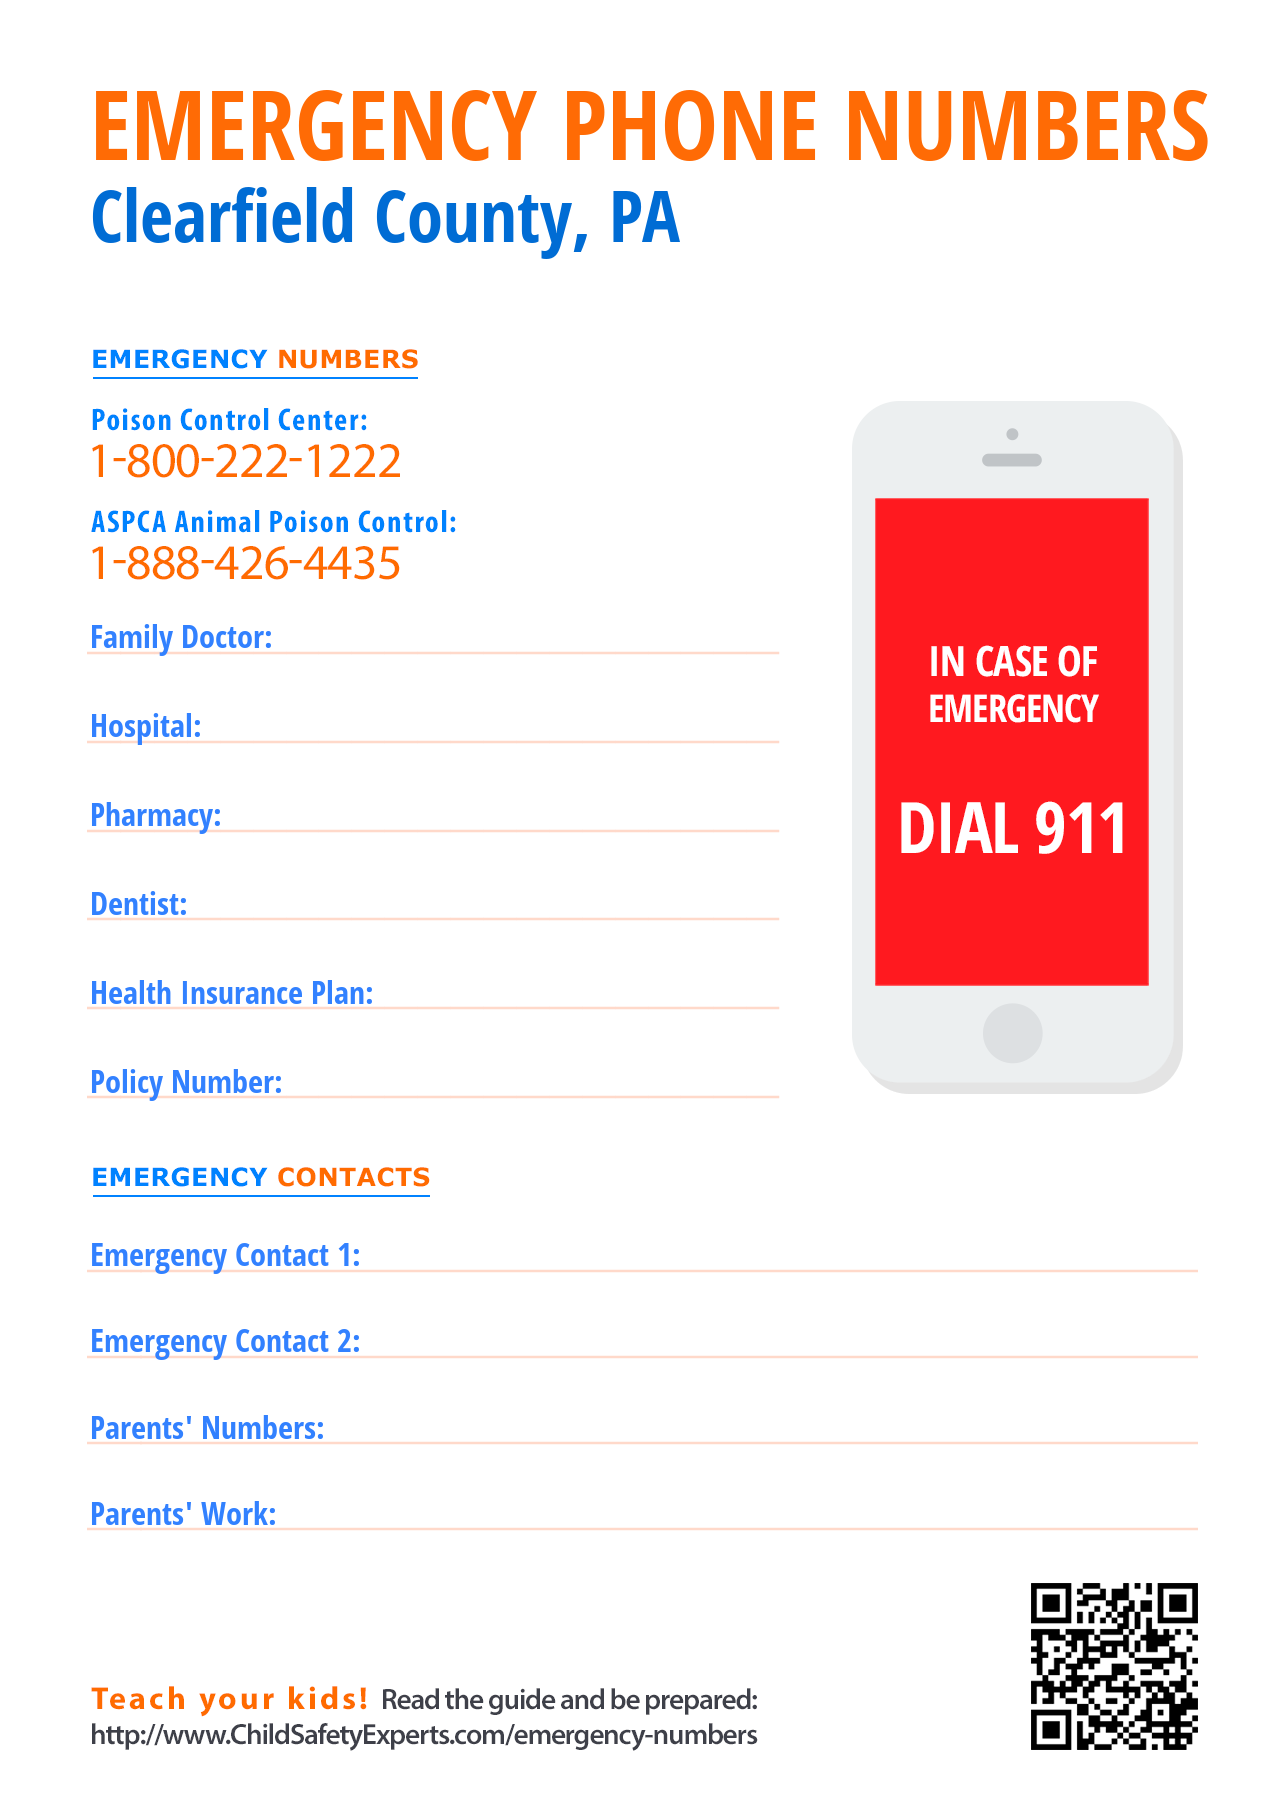 Important emergency phone numbers in Clearfield County, Pennsylvania